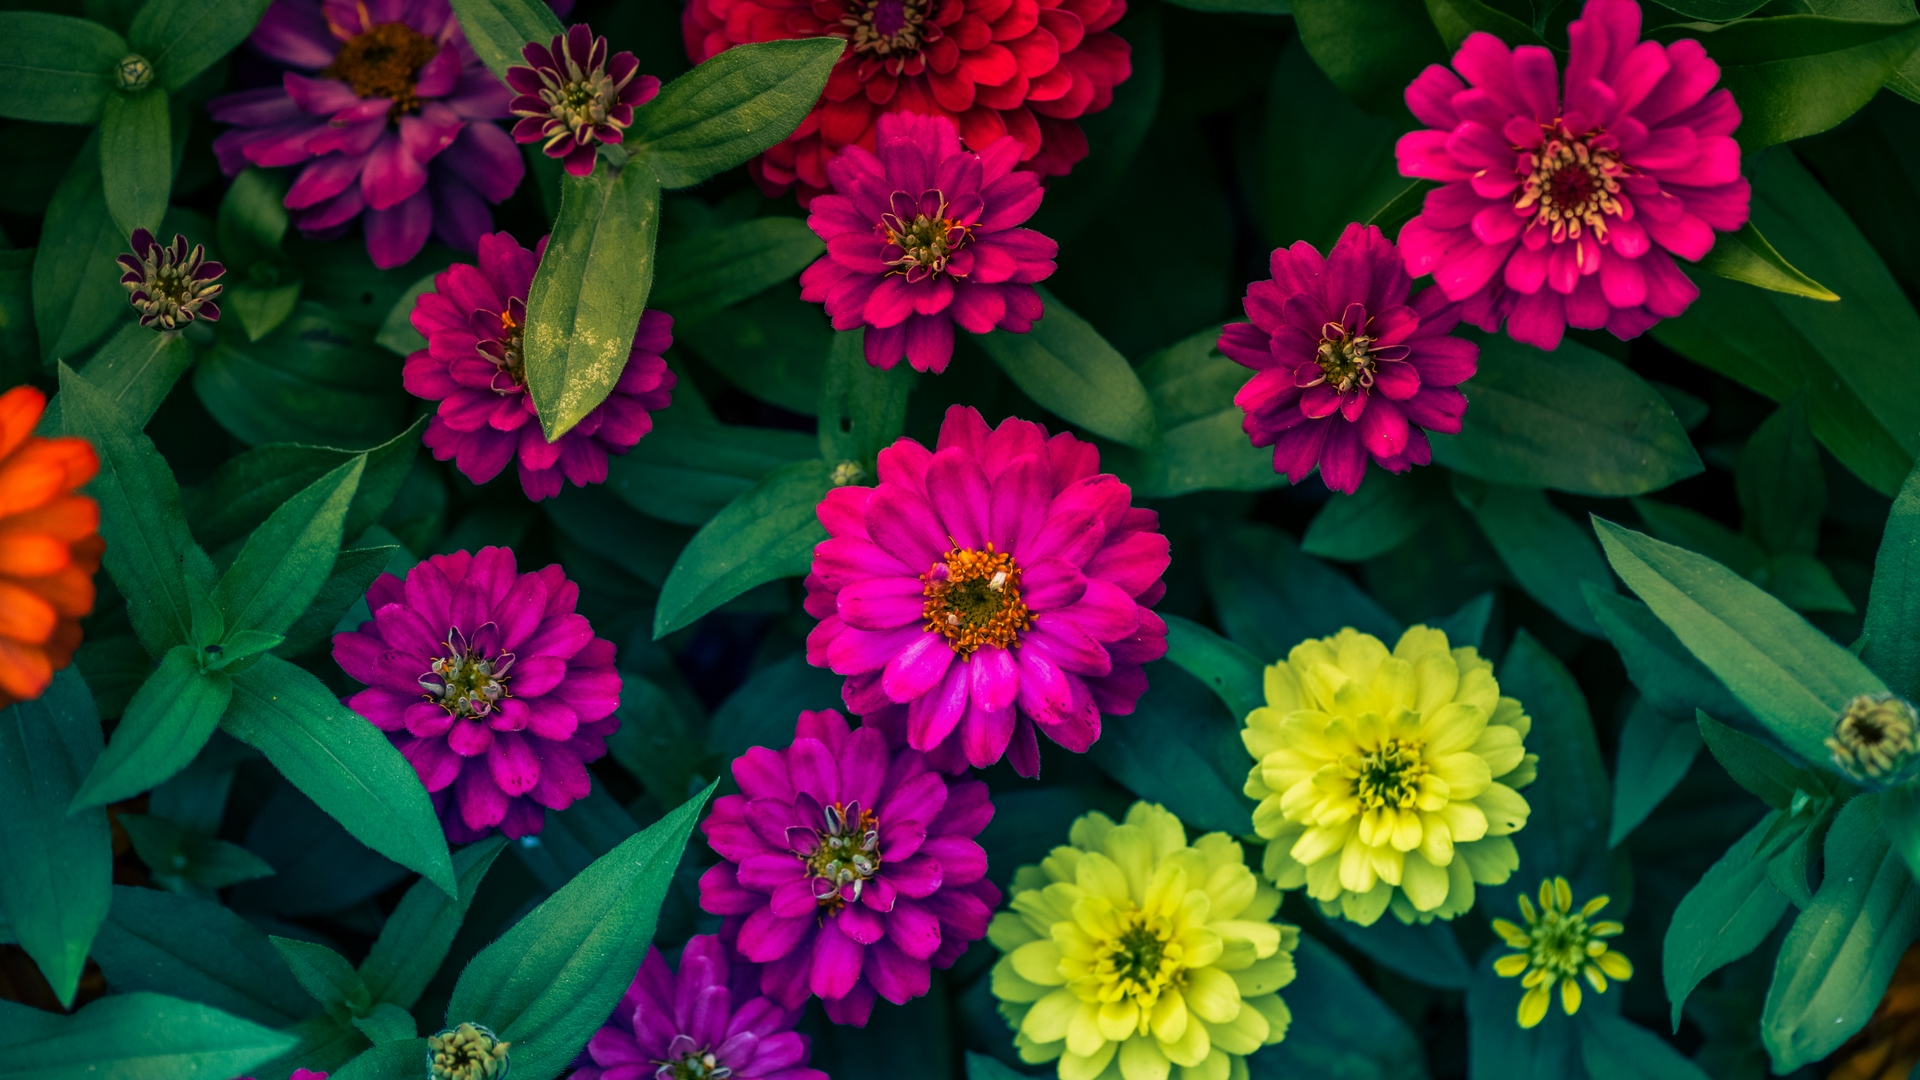 zinnias flowerbed flowers bright x